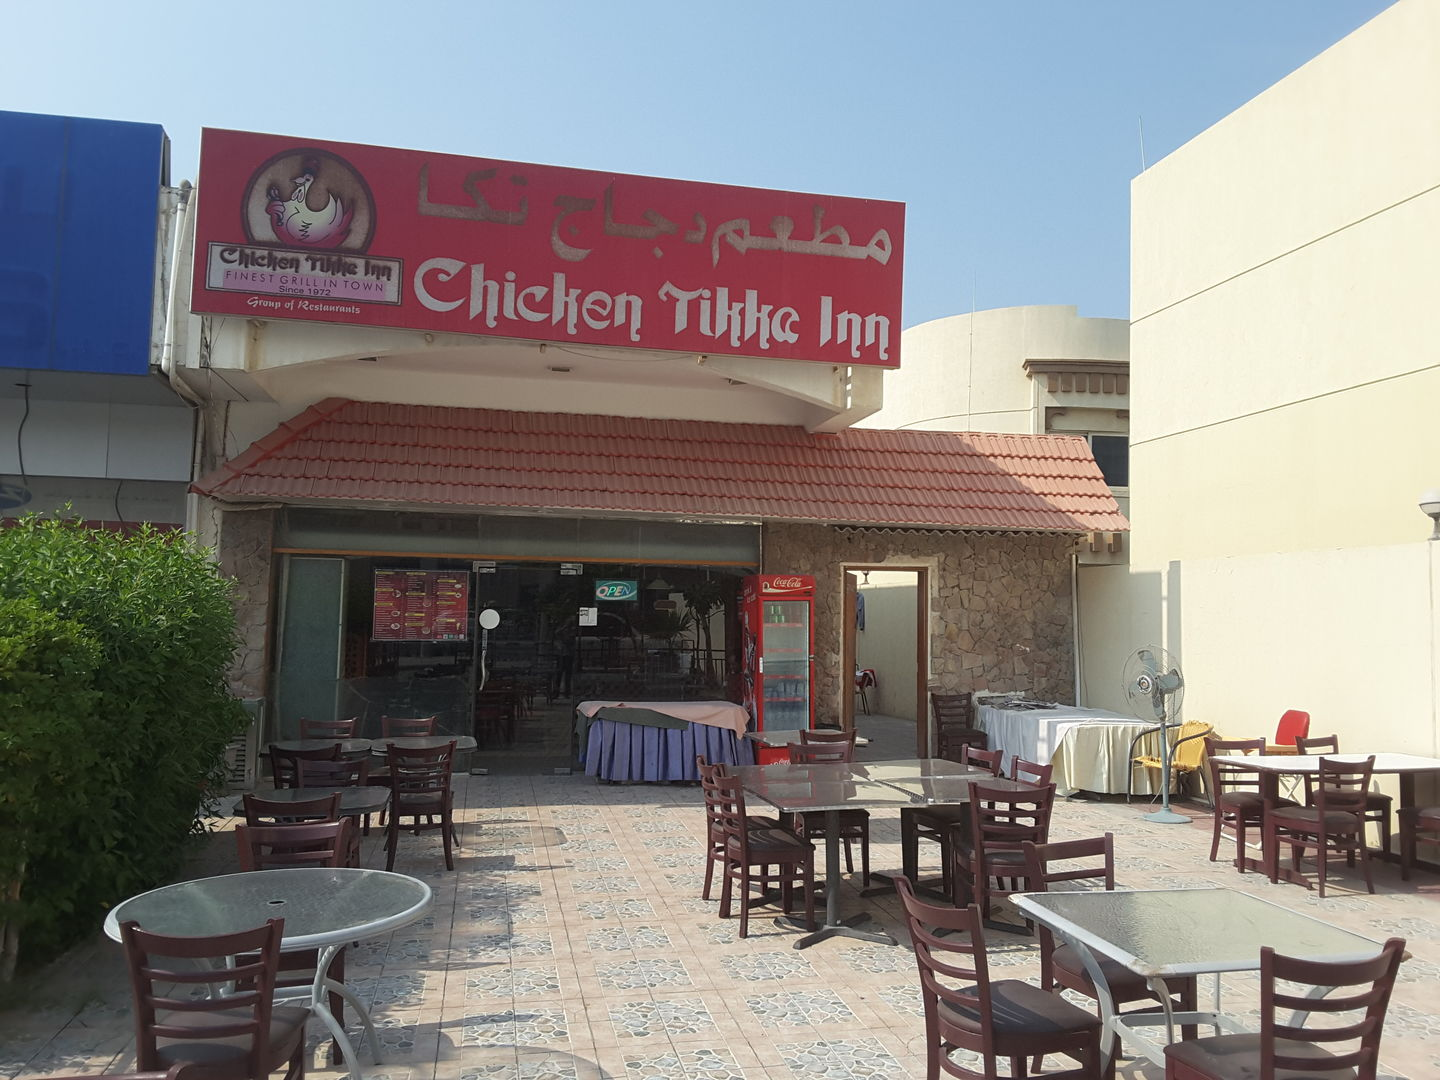 HiDubai-business-chicken-tikka-inn-food-beverage-restaurants-bars-umm-suqeim-1-dubai-2